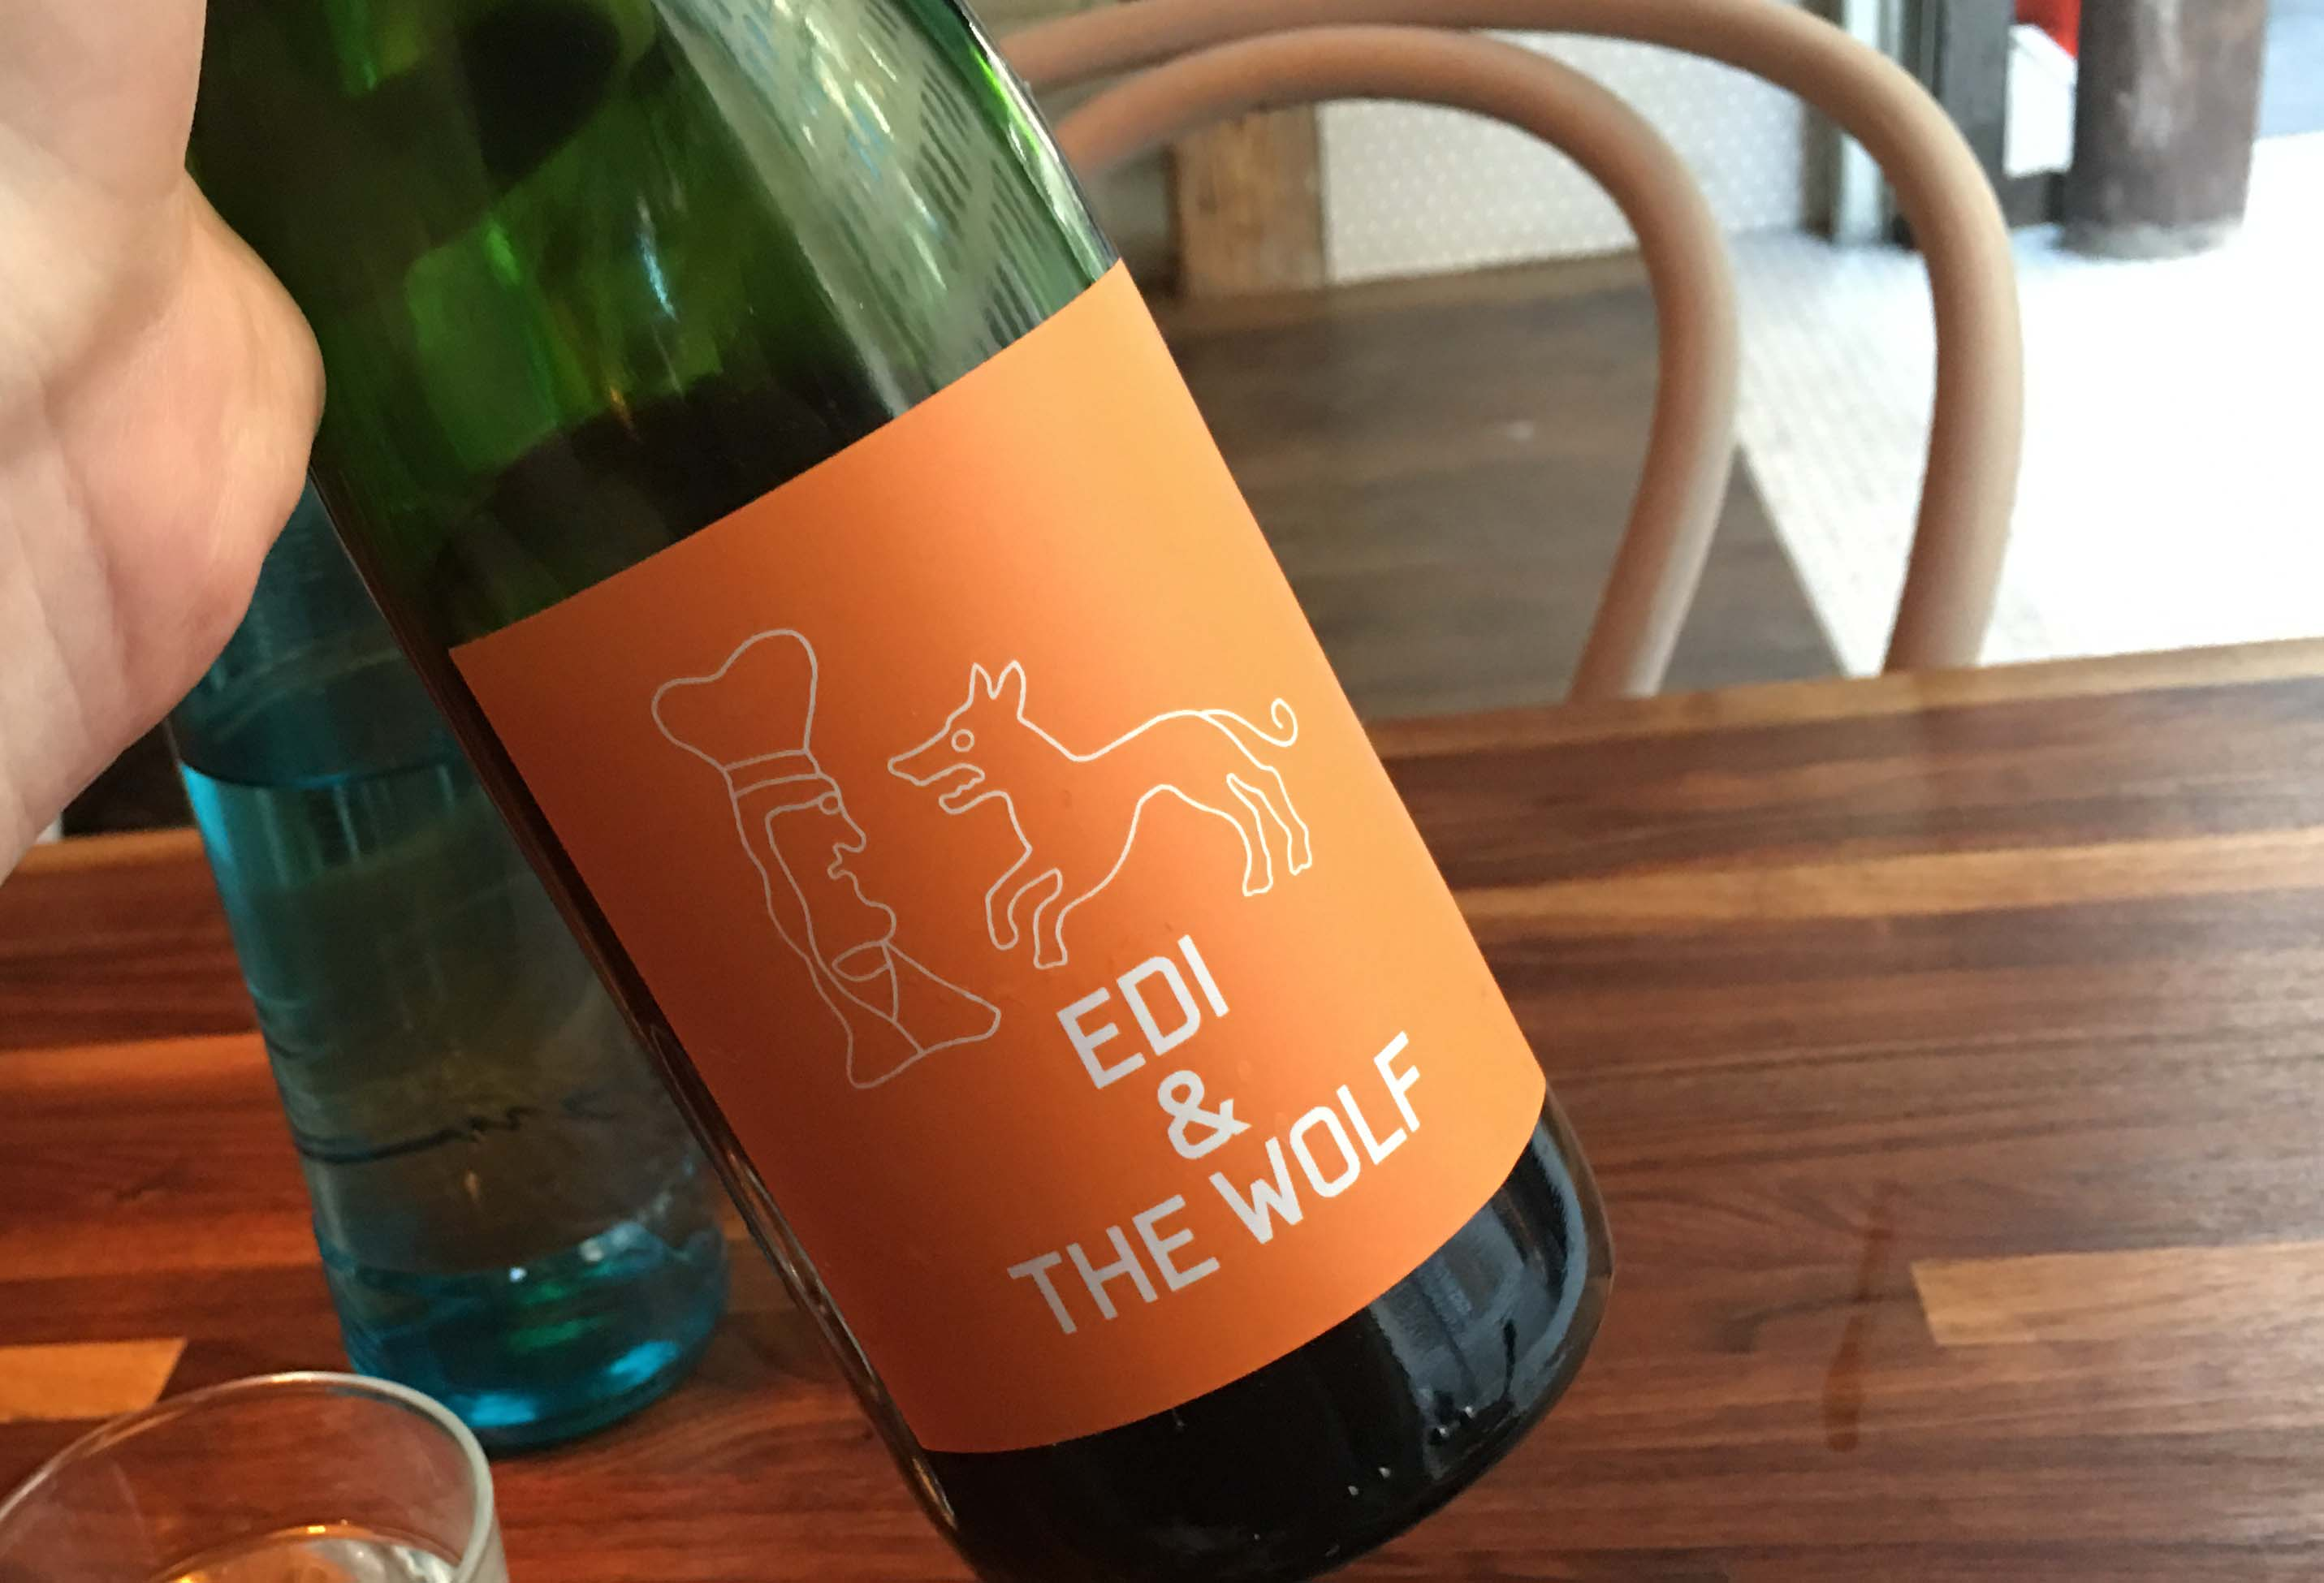 Schilling Edi and the Wolf wine